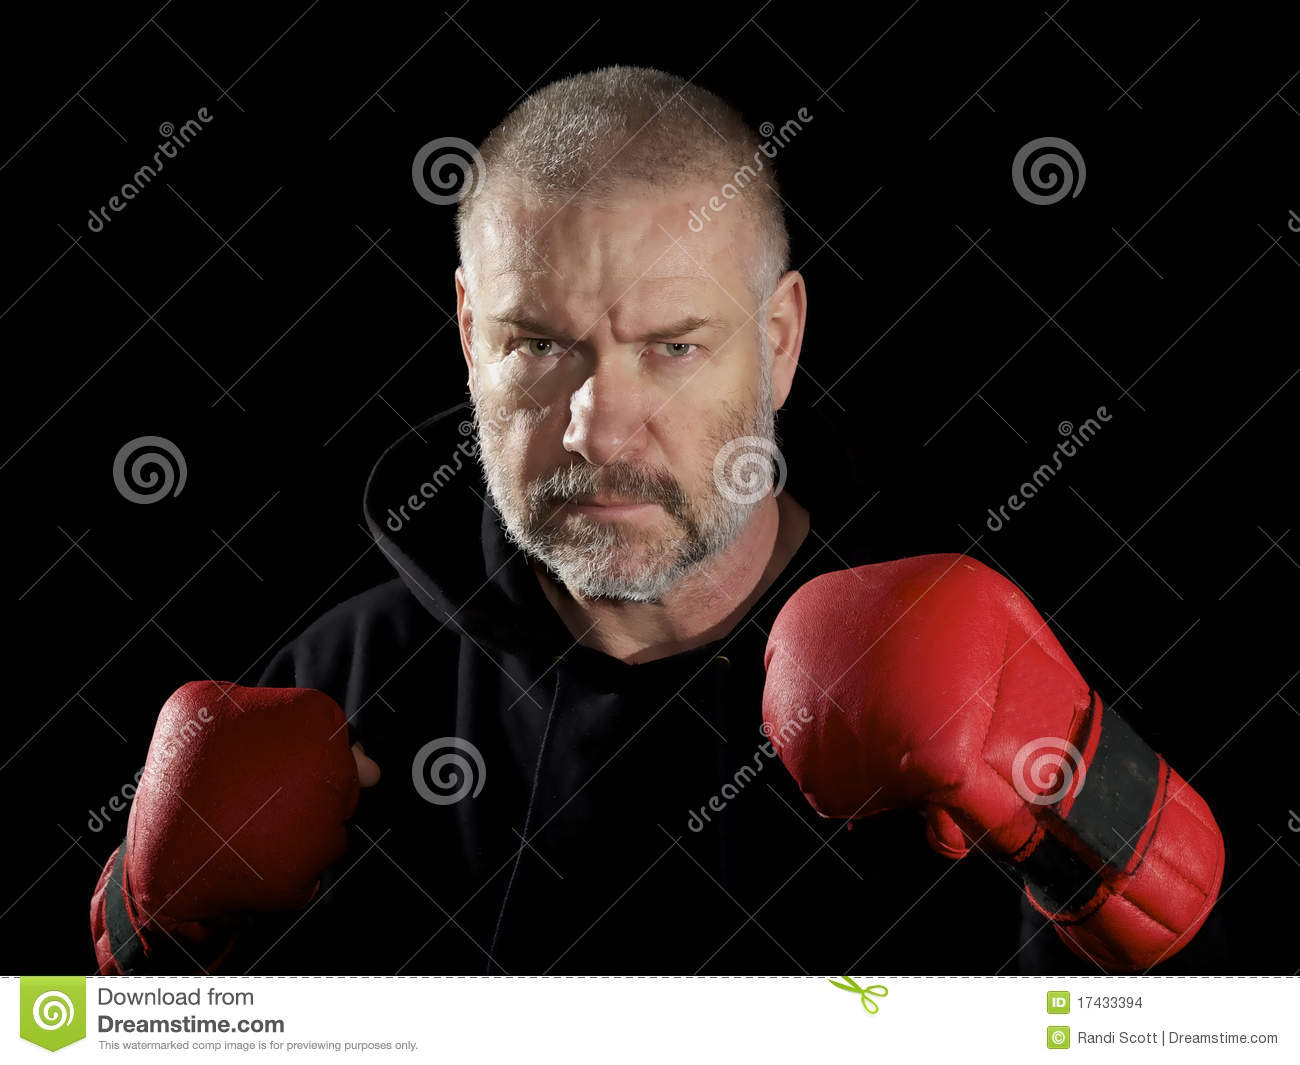 Posed fighter wearing gloves